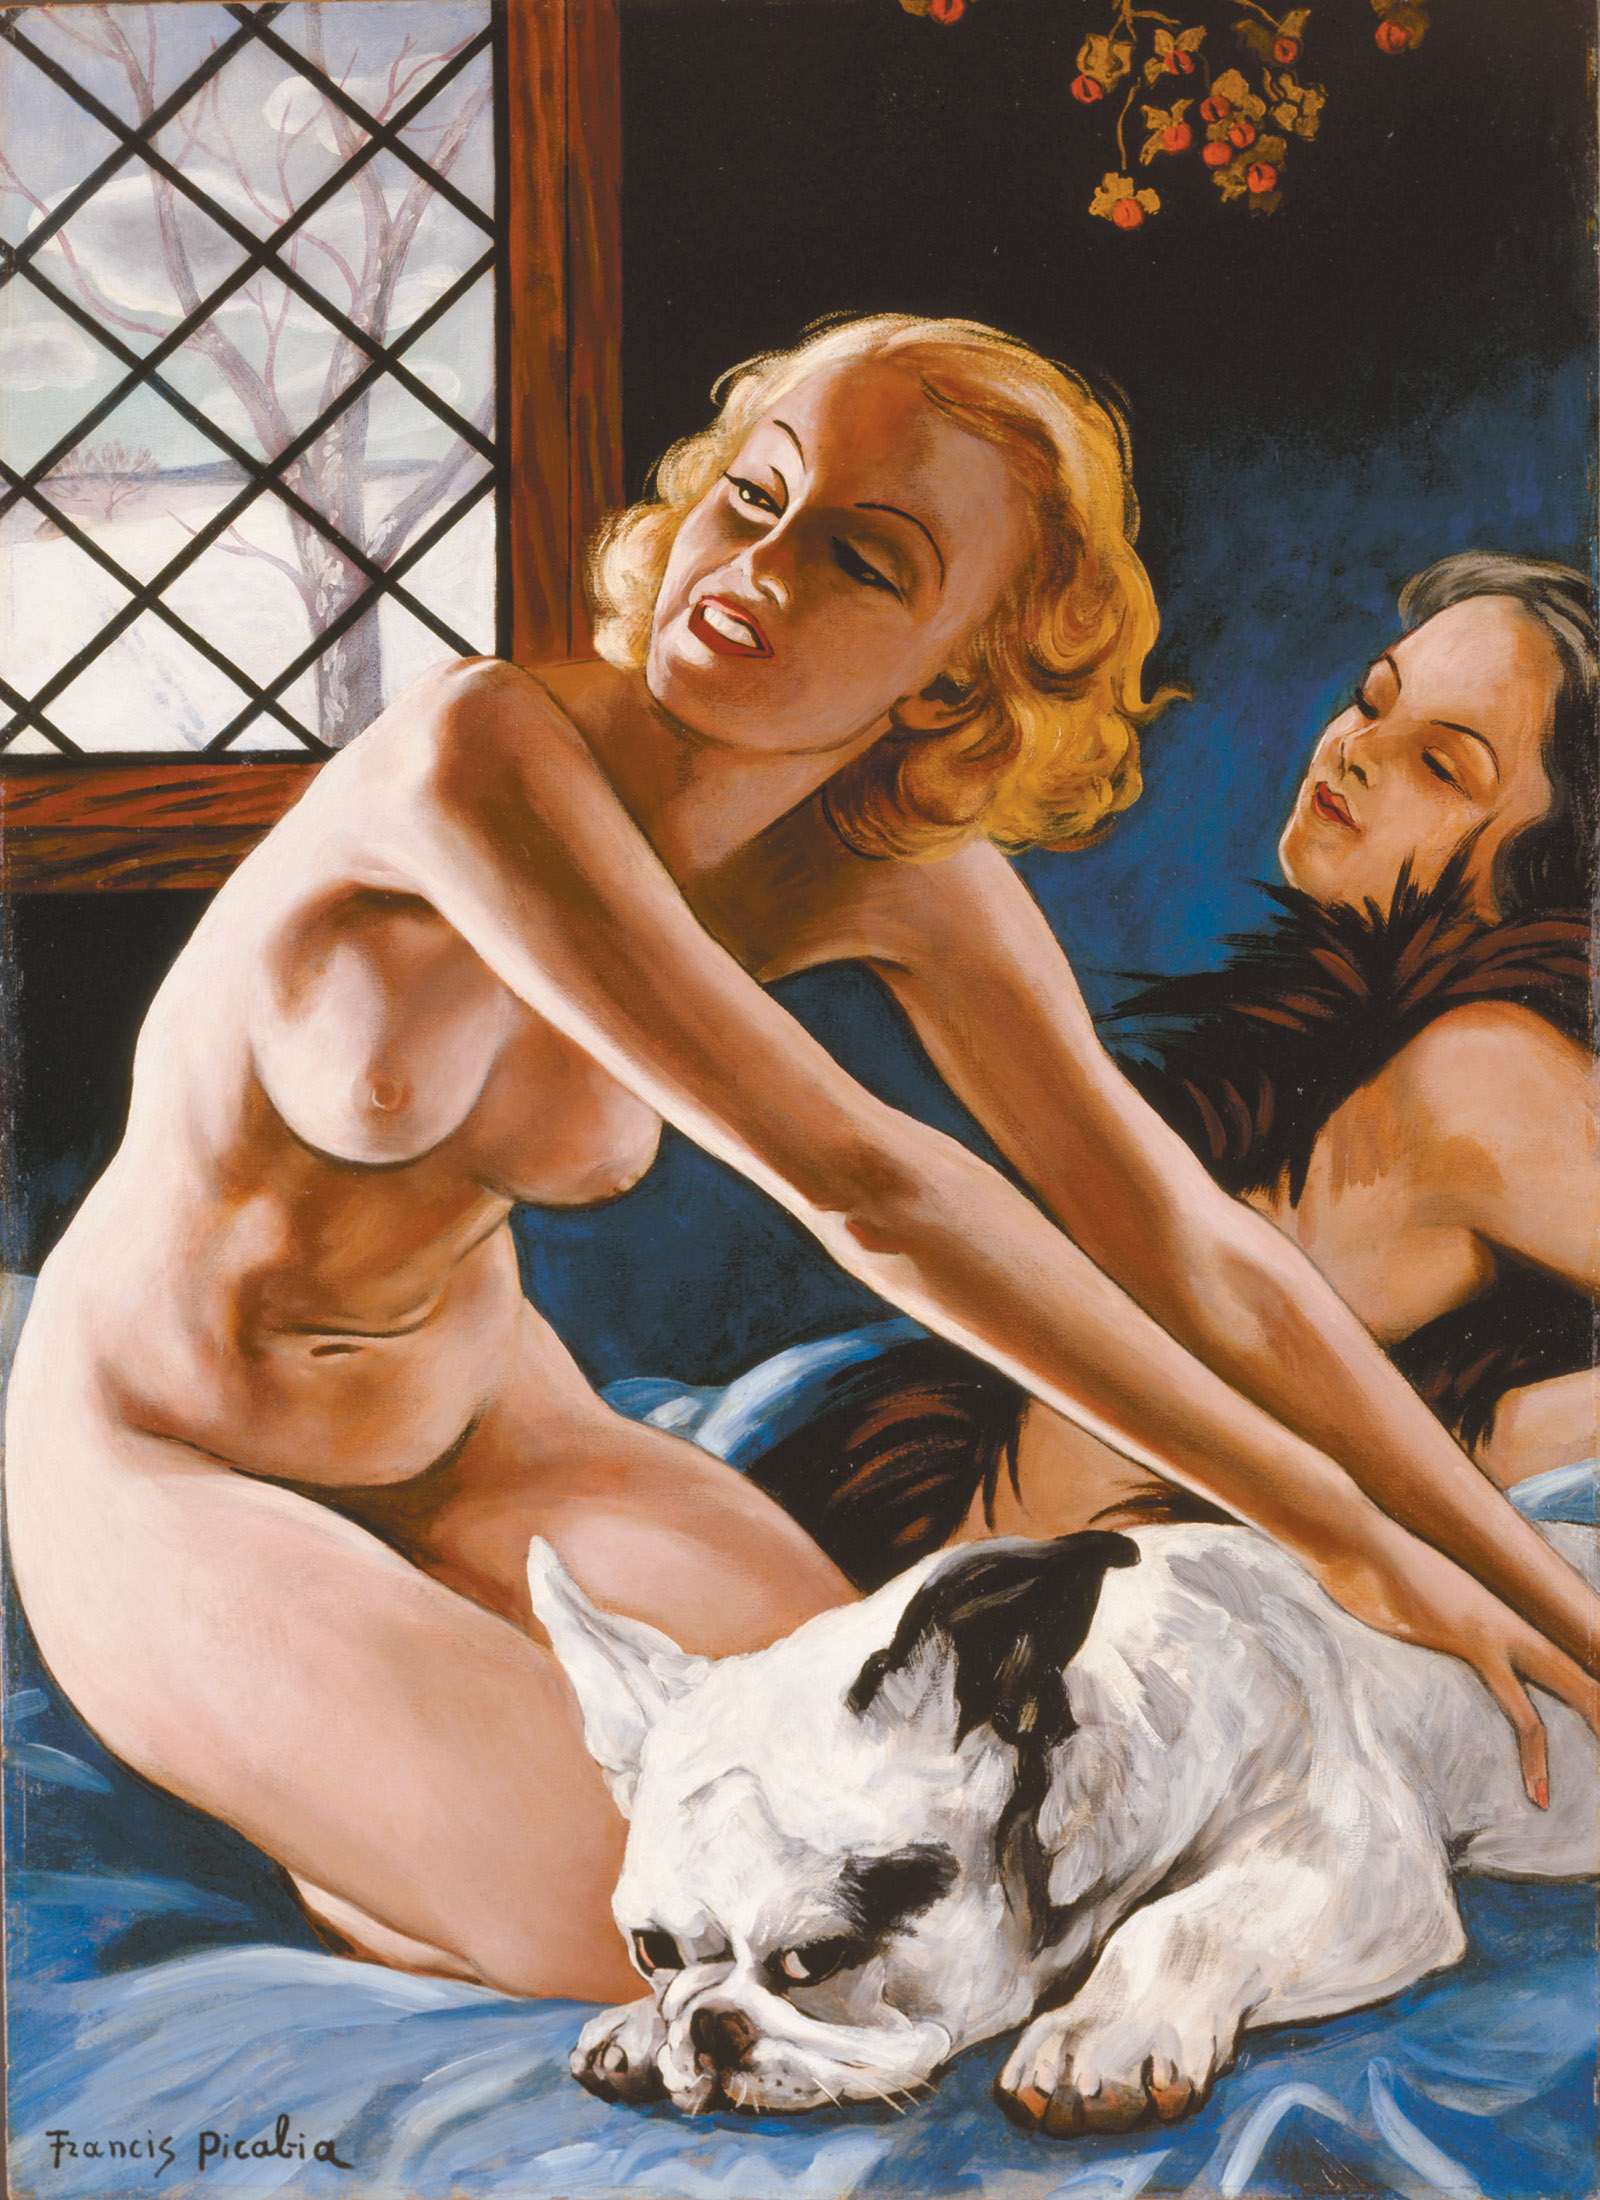 Picabia's Big Moment